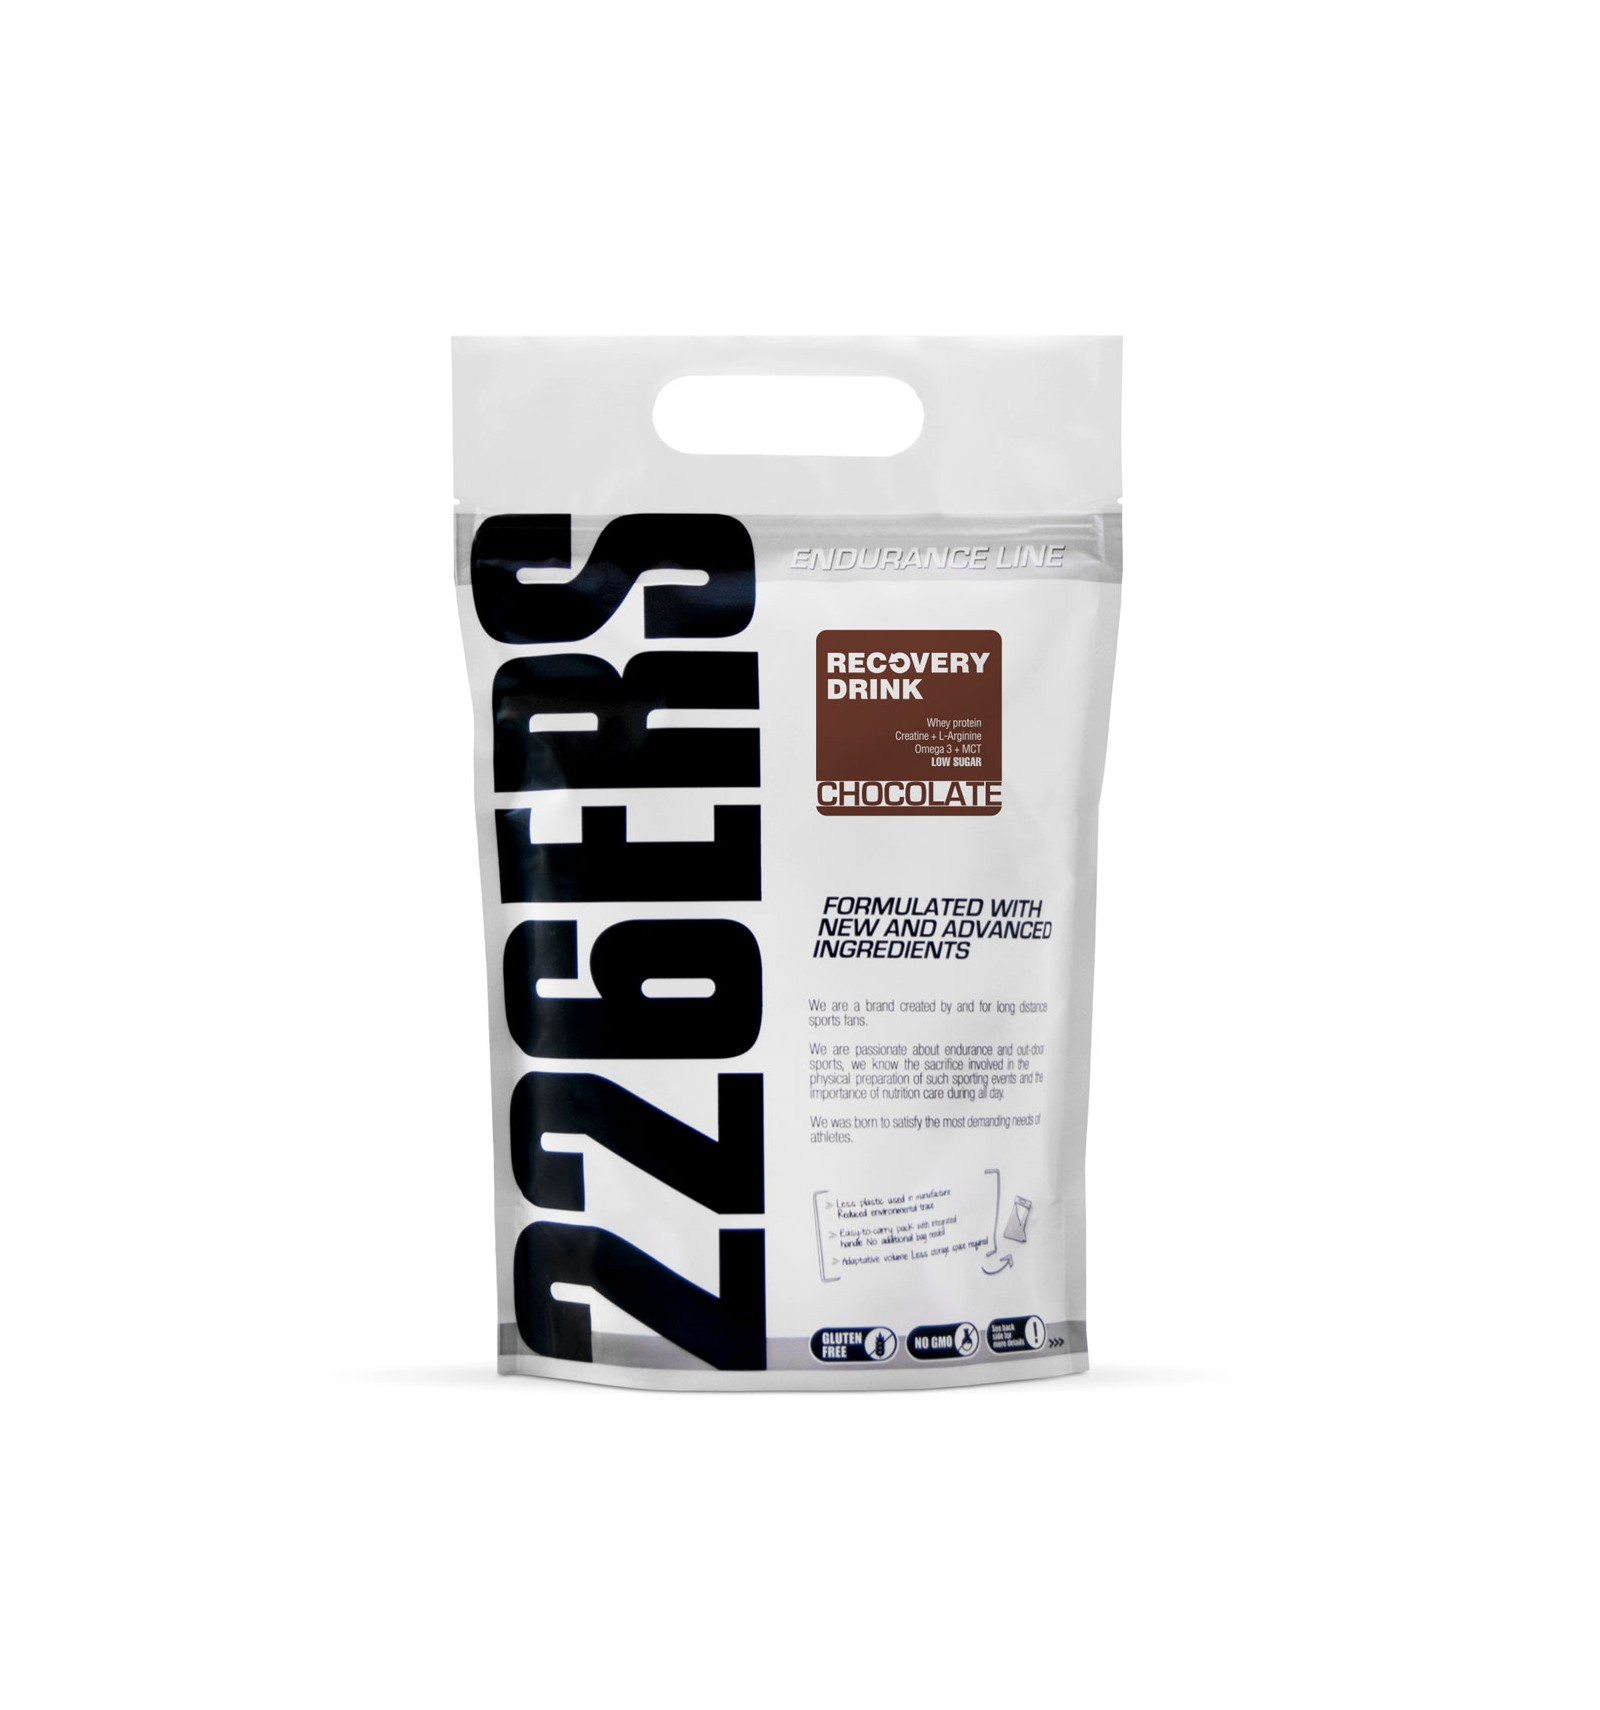 PW-RD-01K-CH 226 RECOVERY DRINK 1KG XOCOLATA - 226ERS